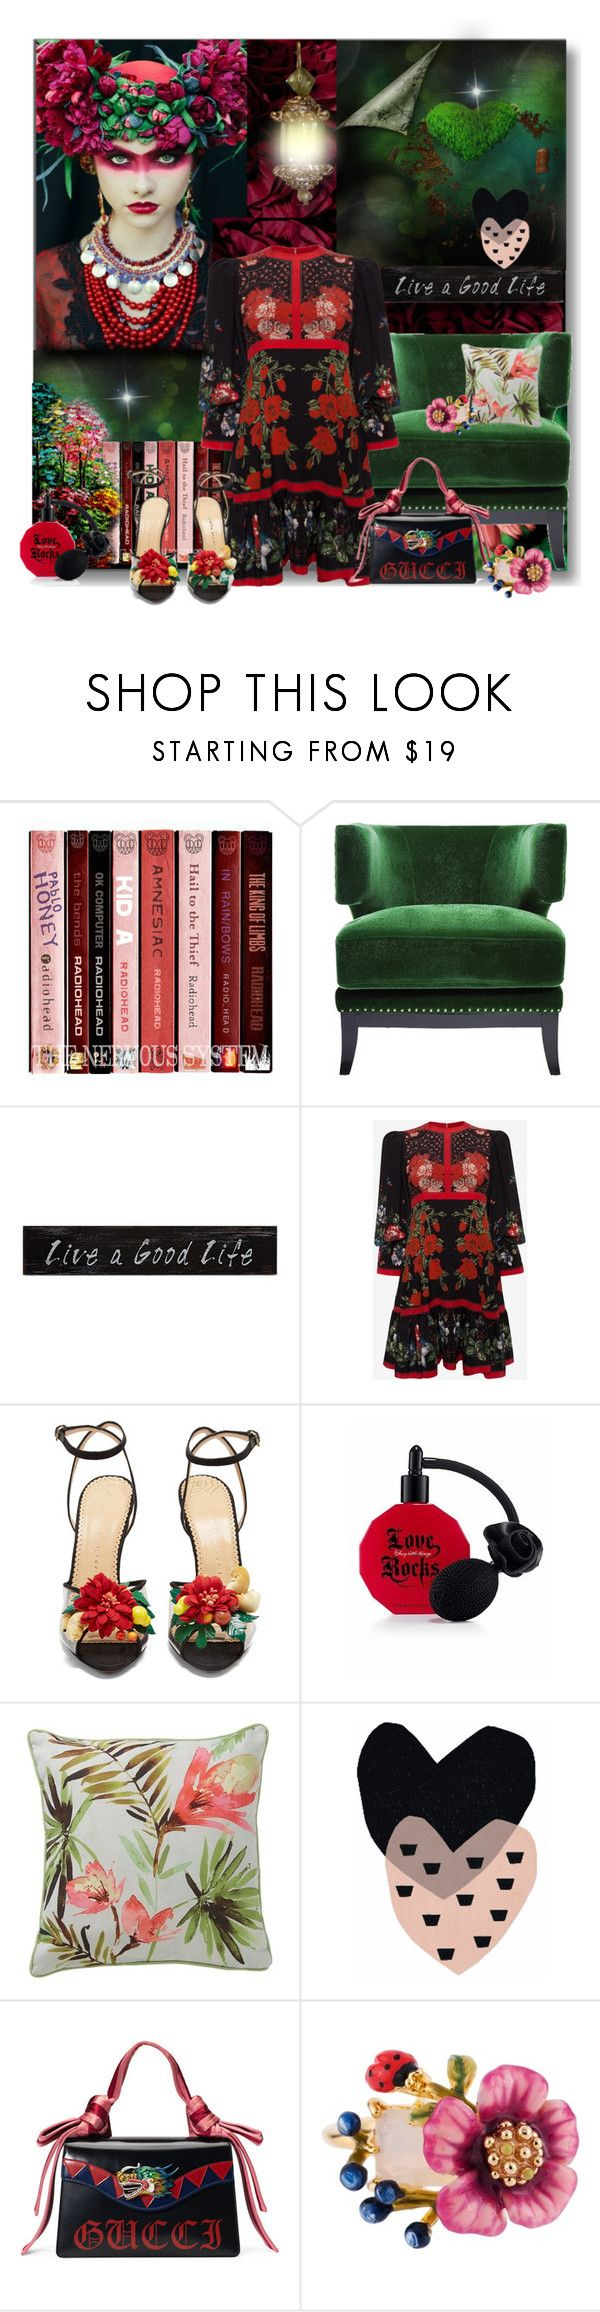 """Live A Good Life......"" by nz-carla ❤ liked on Polyvore featuring KARE, Creative Co-op, Alexander McQueen, Charlotte Olympia, Victoria's Secret, Gucci and Les Néréides"